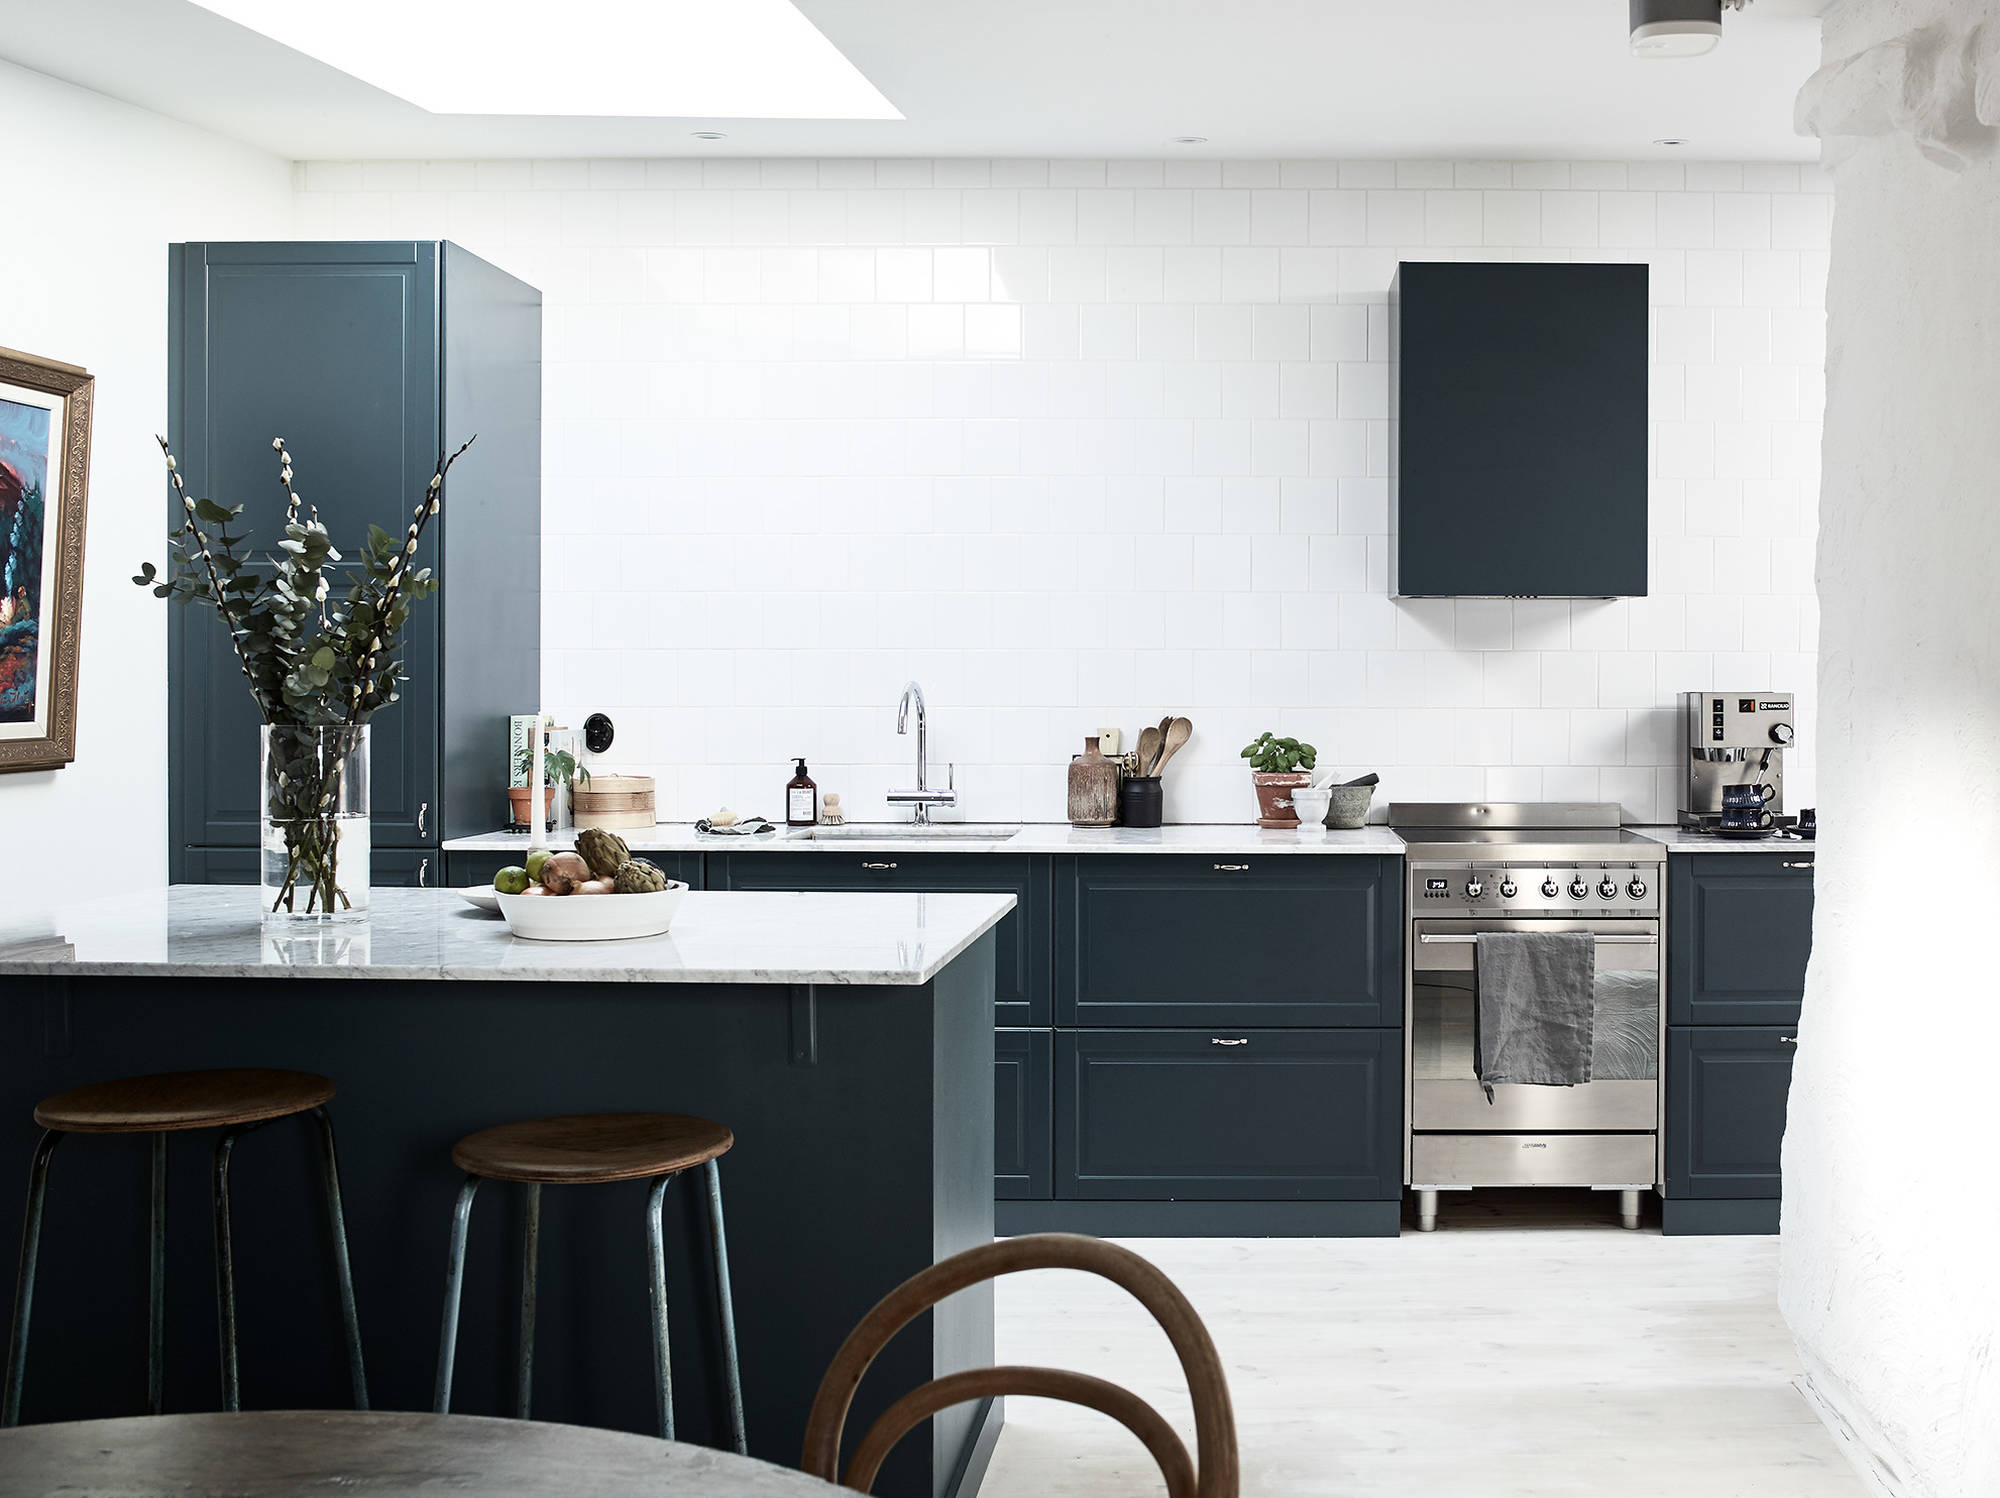 fascinating blue kitchen cabinets | Petrol blue kitchen - COCO LAPINE DESIGNCOCO LAPINE DESIGN